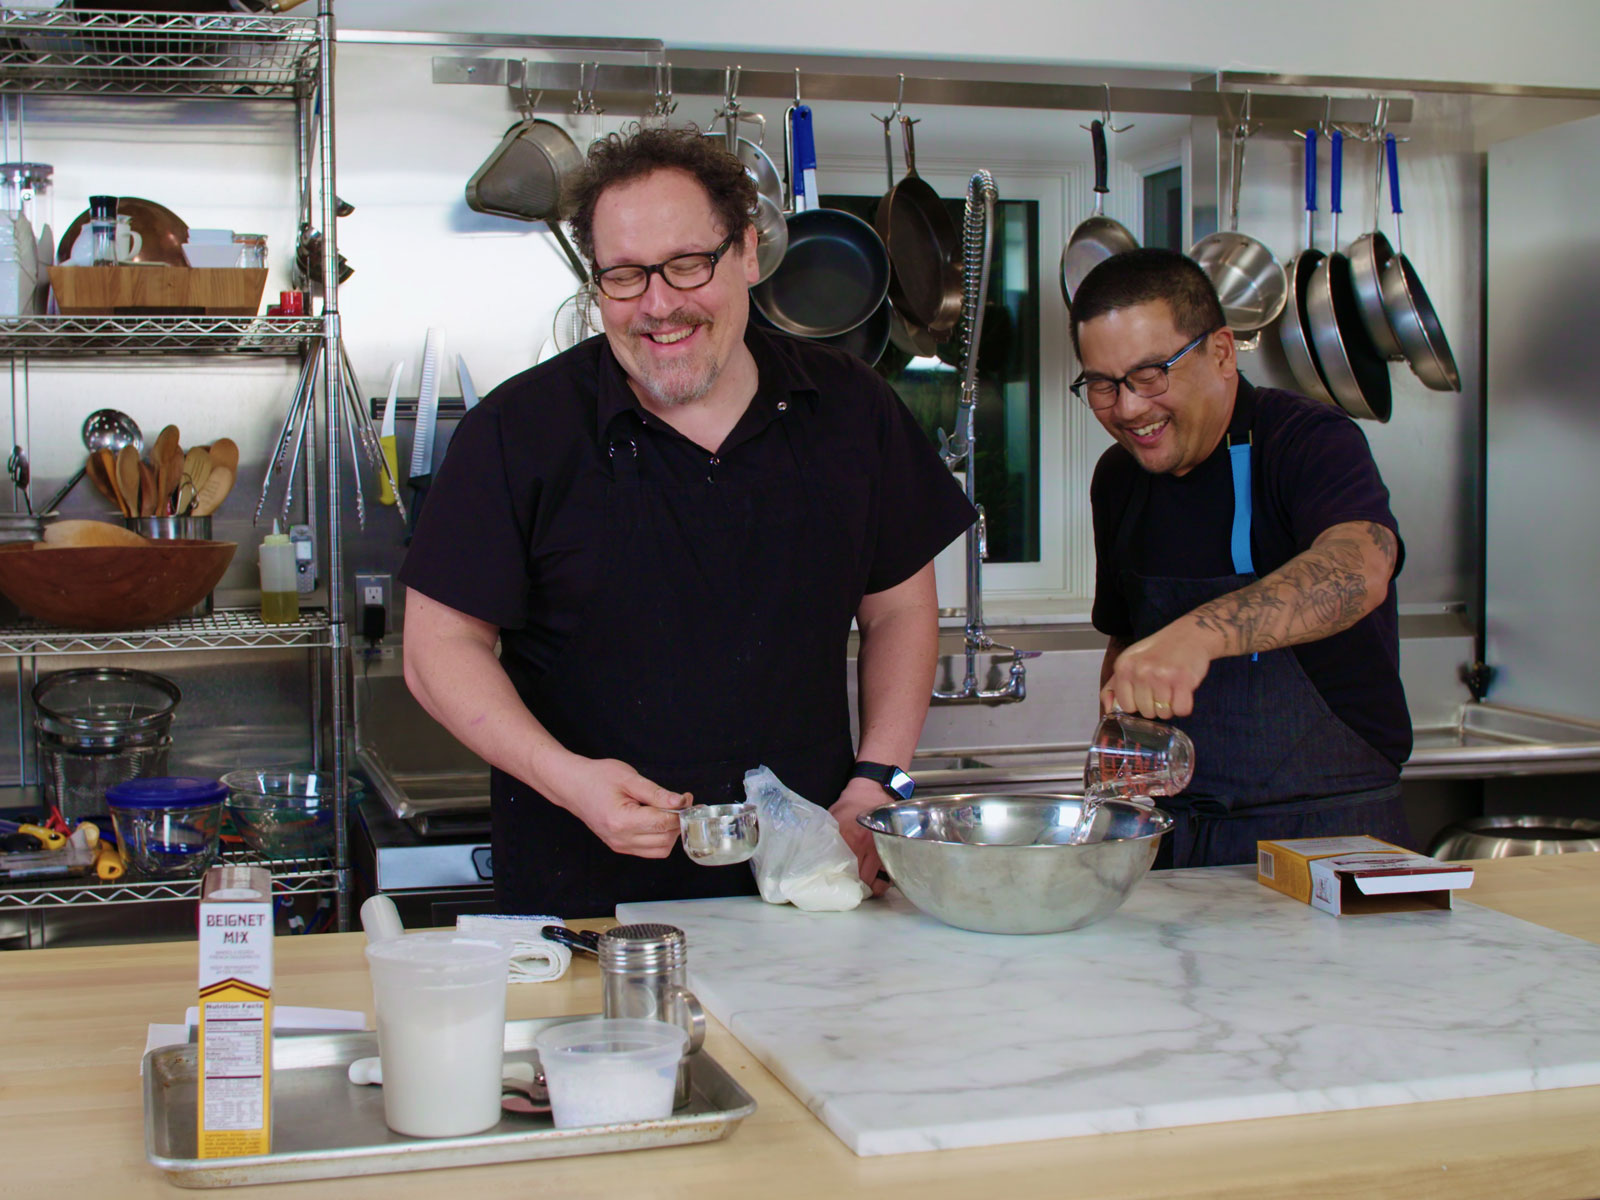 Roy Choi and Jon Favreau Revisit Dishes from 'Chef' on 'The Chef Show'